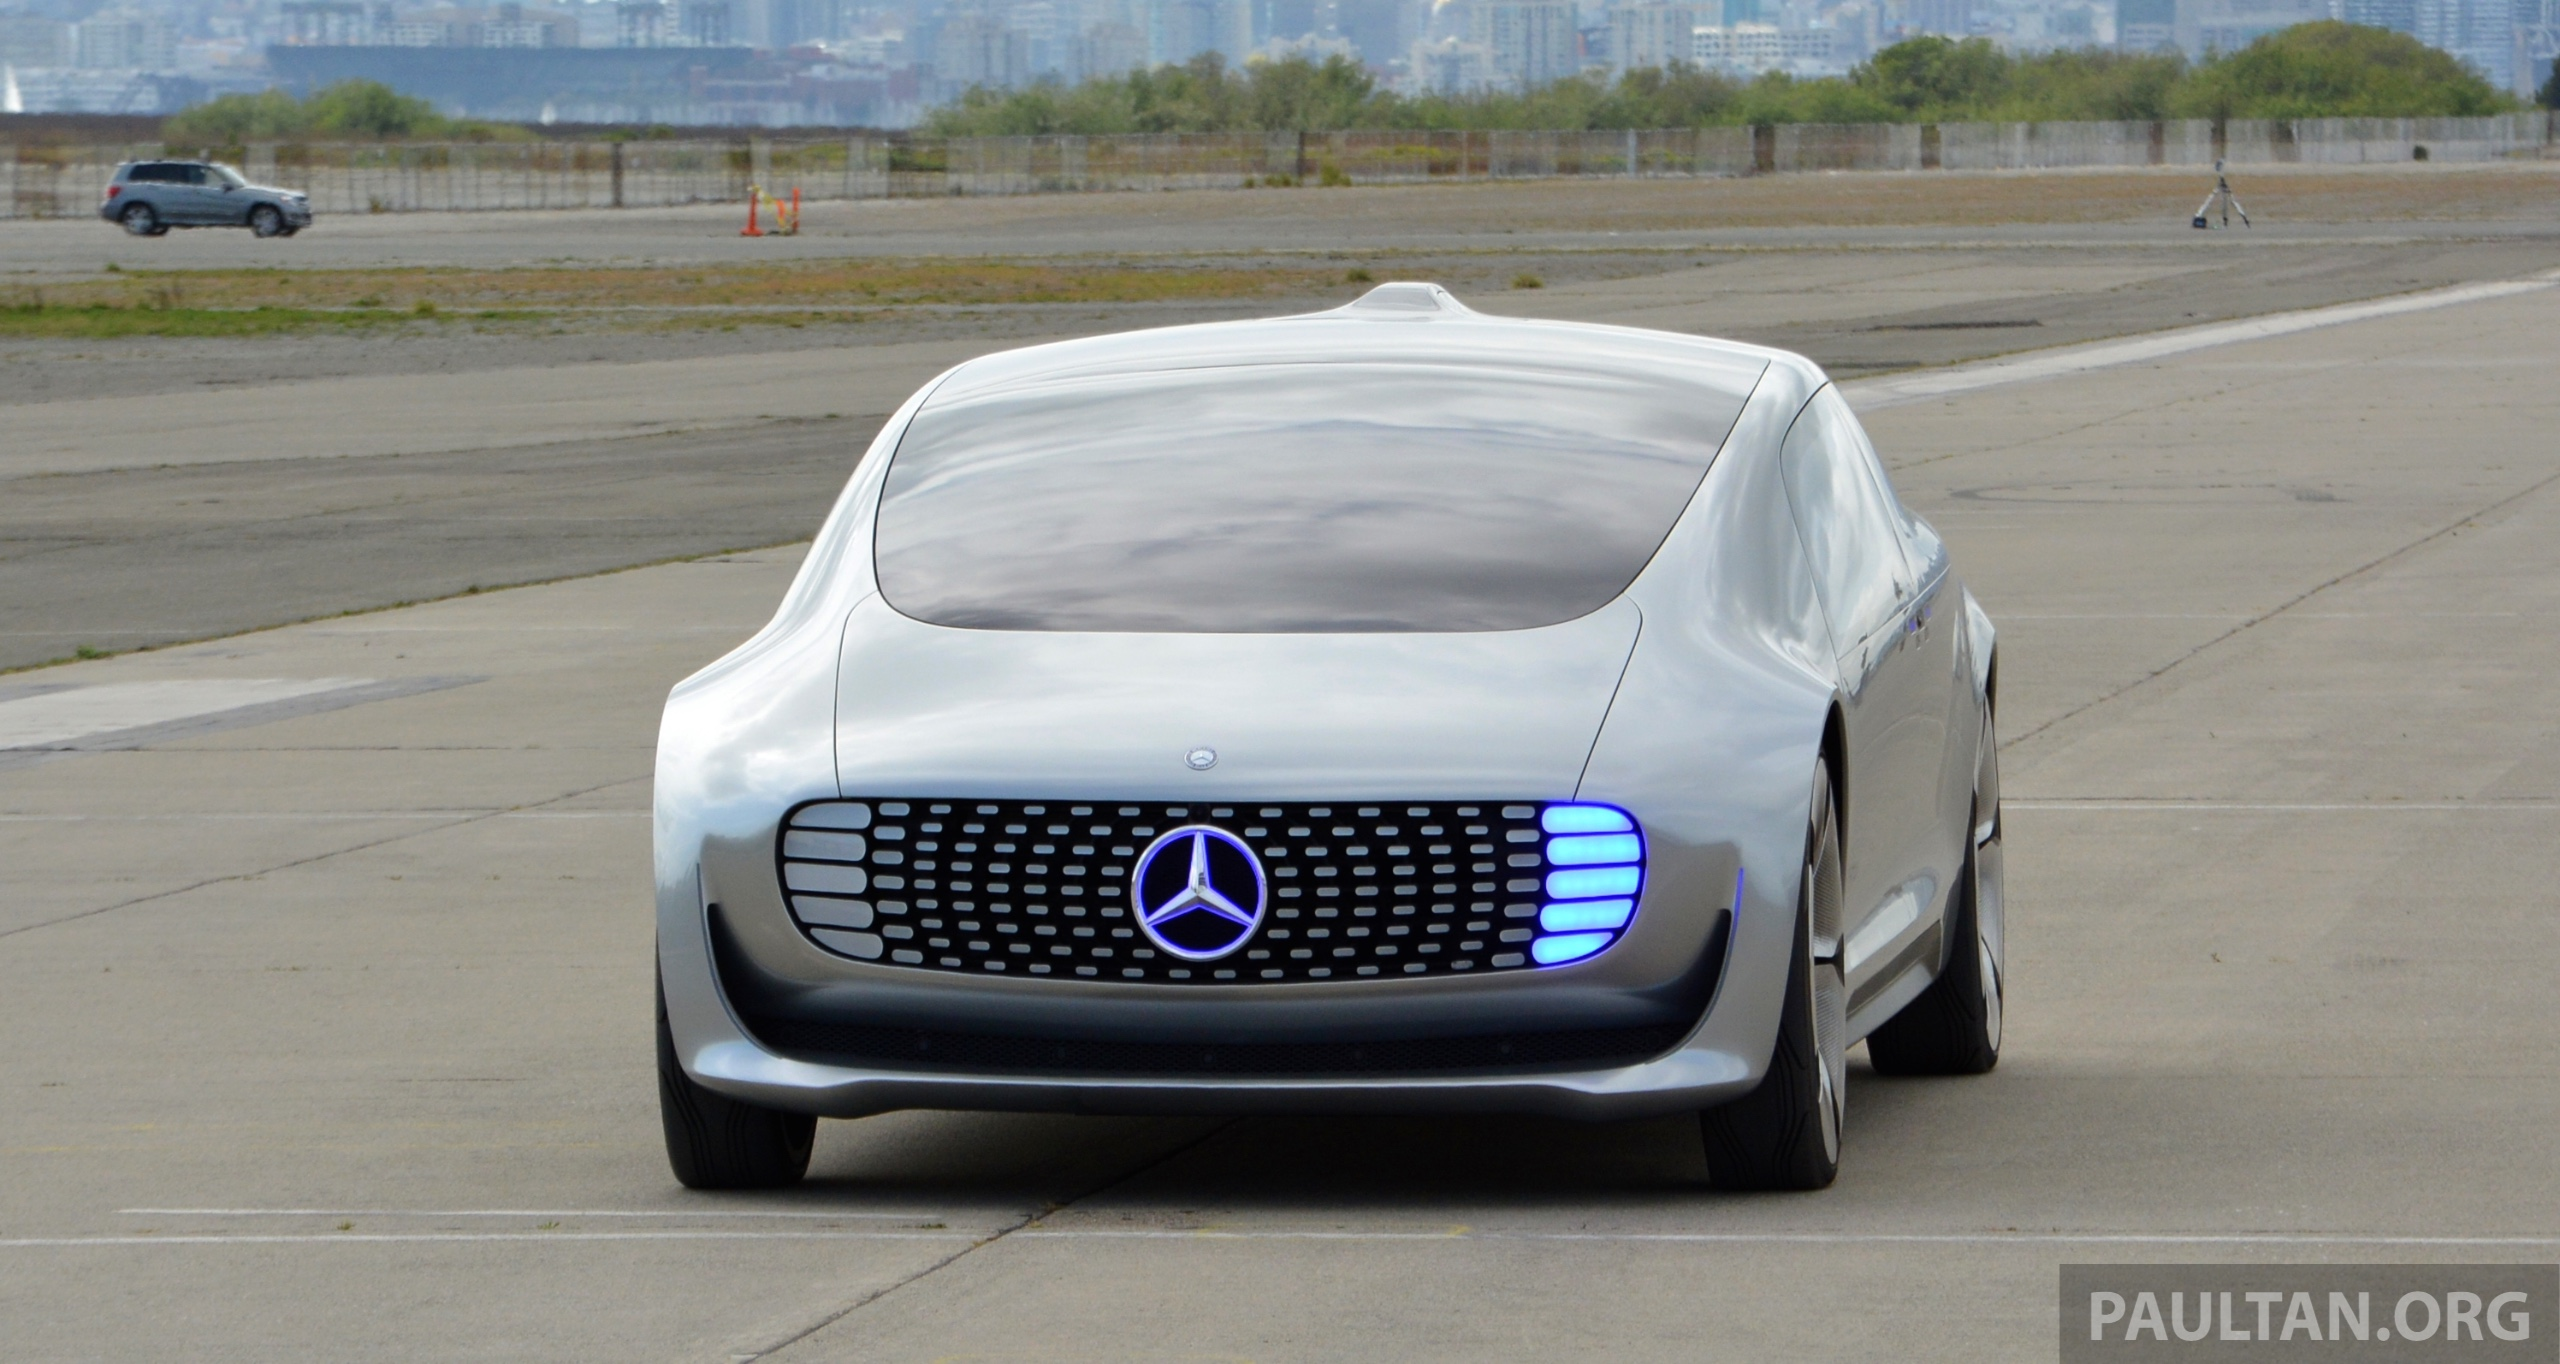 Driven Mercedes Benz F 015 Luxury In Motion In Sf Paul